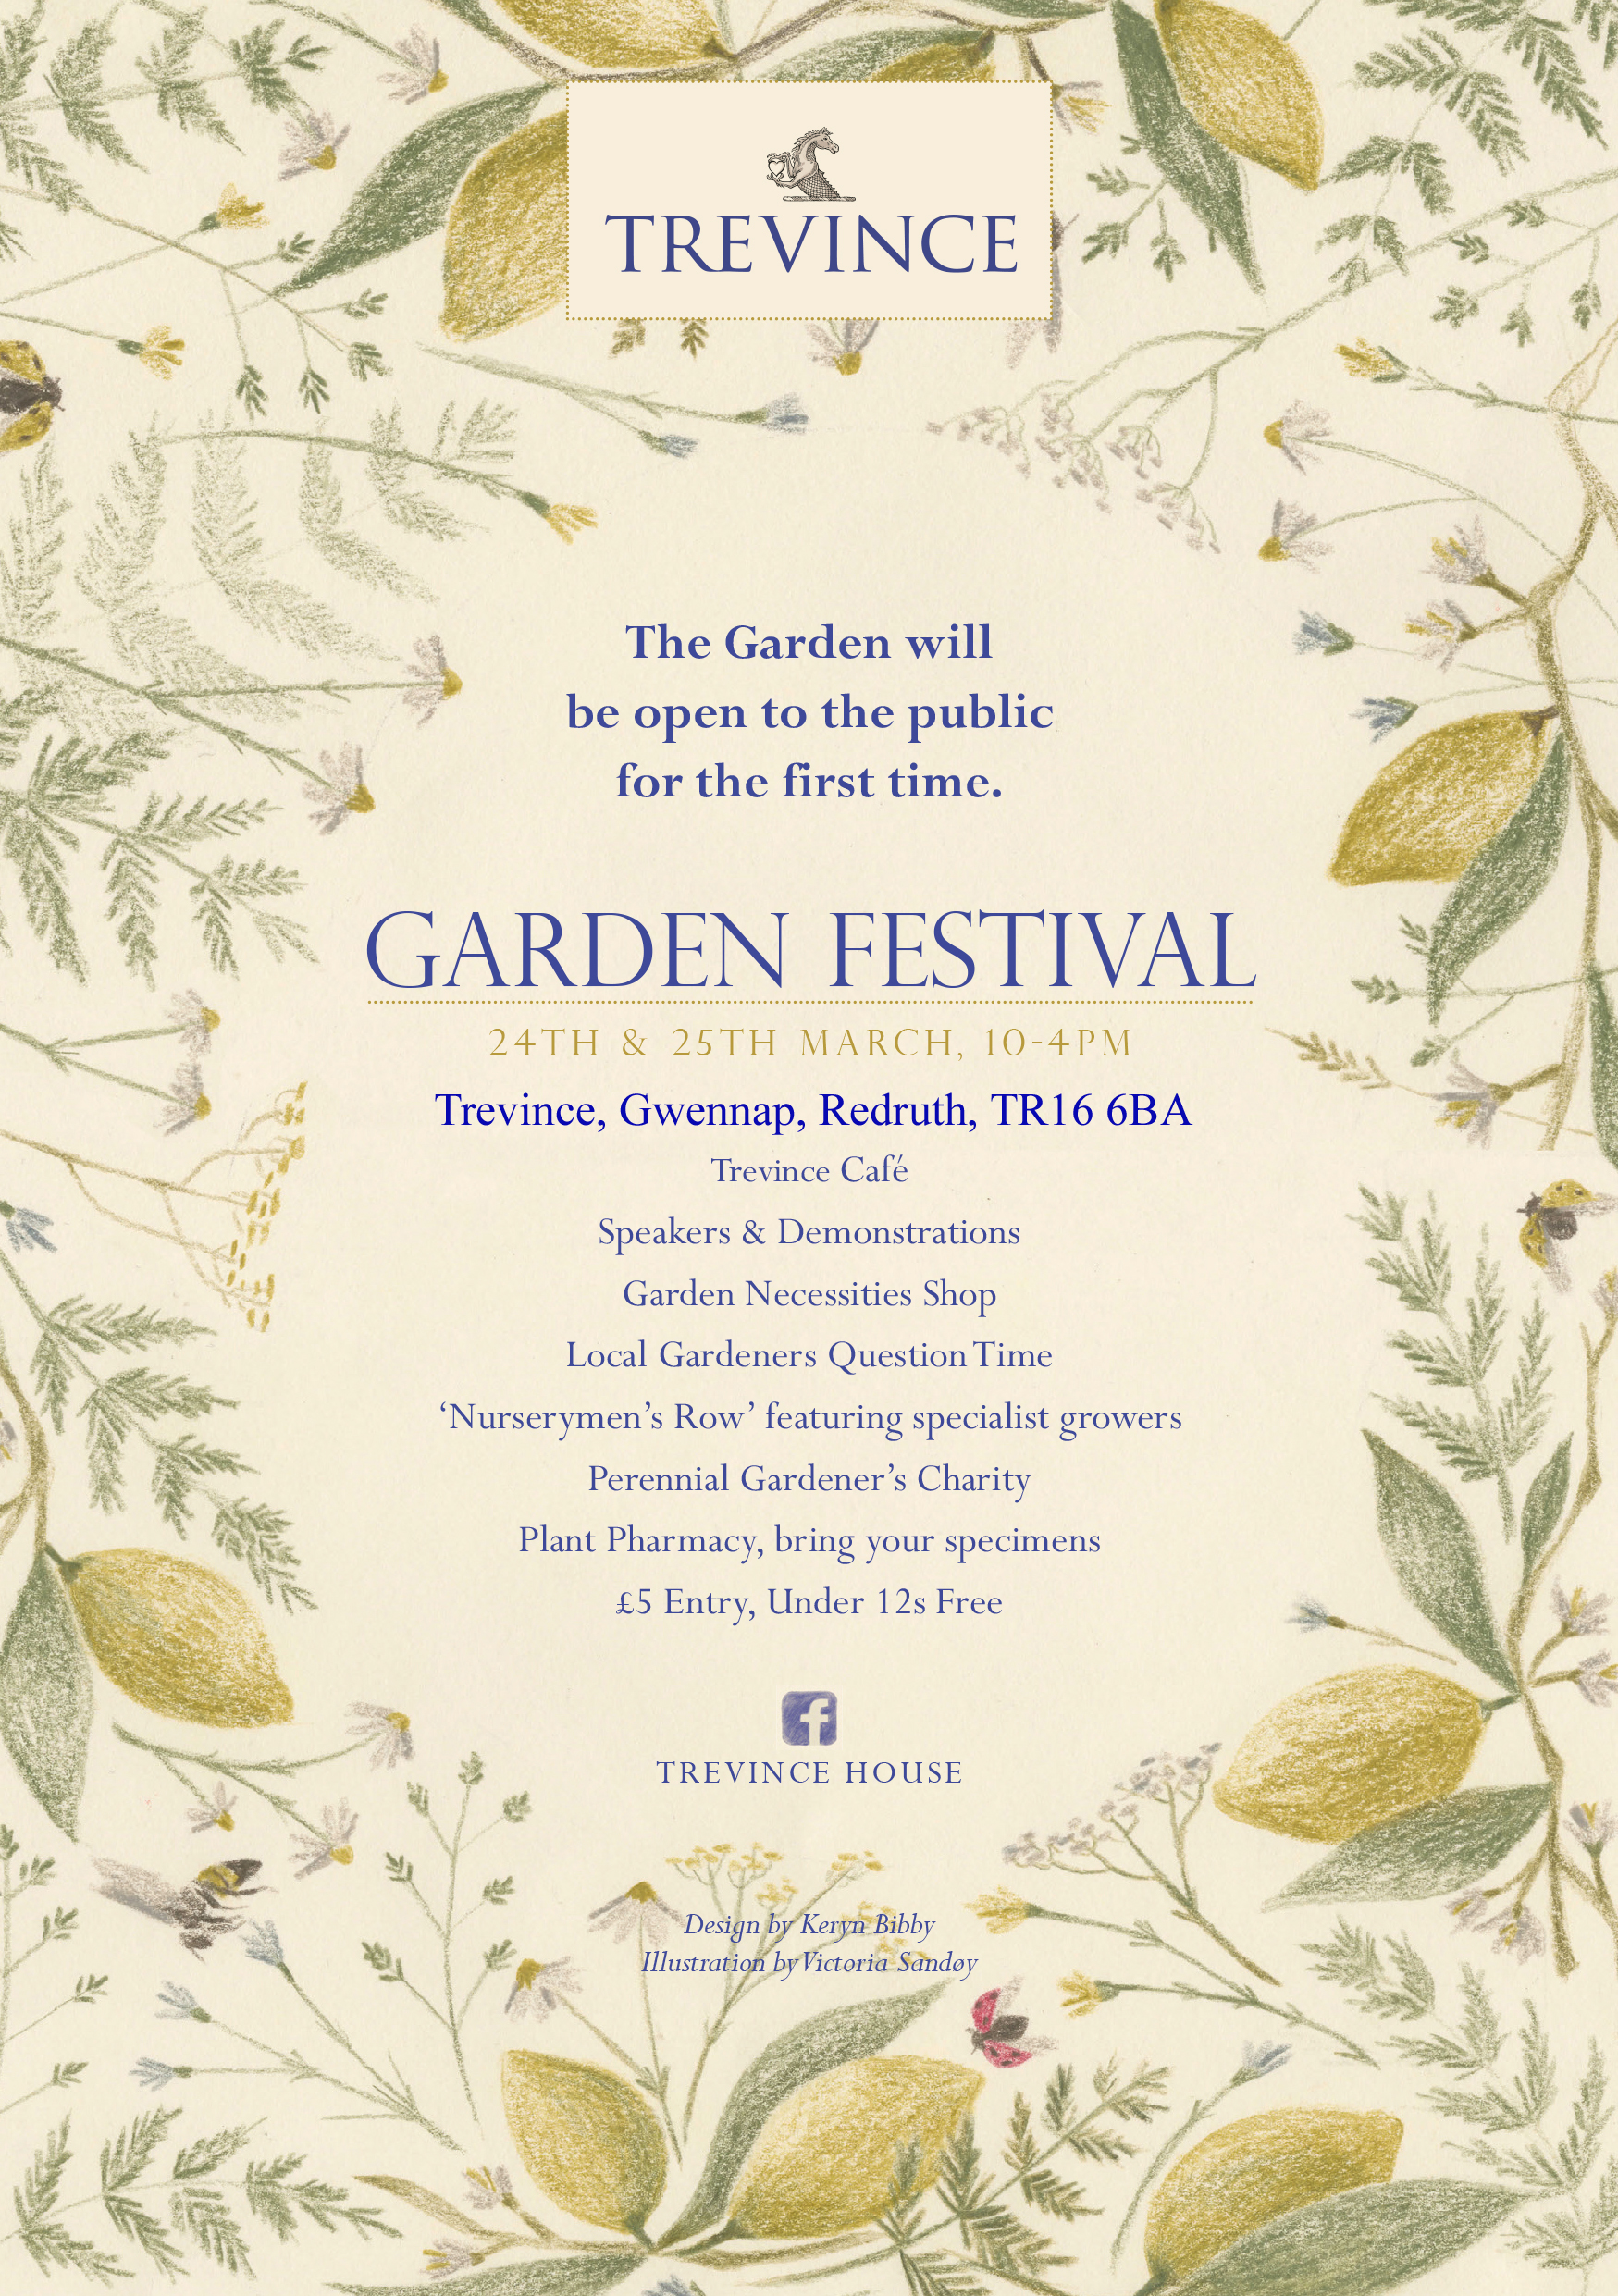 TREVINCE GARDEN FESTIVAL – 24-25 MARCH 2018 – COME AND SEE US THERE!